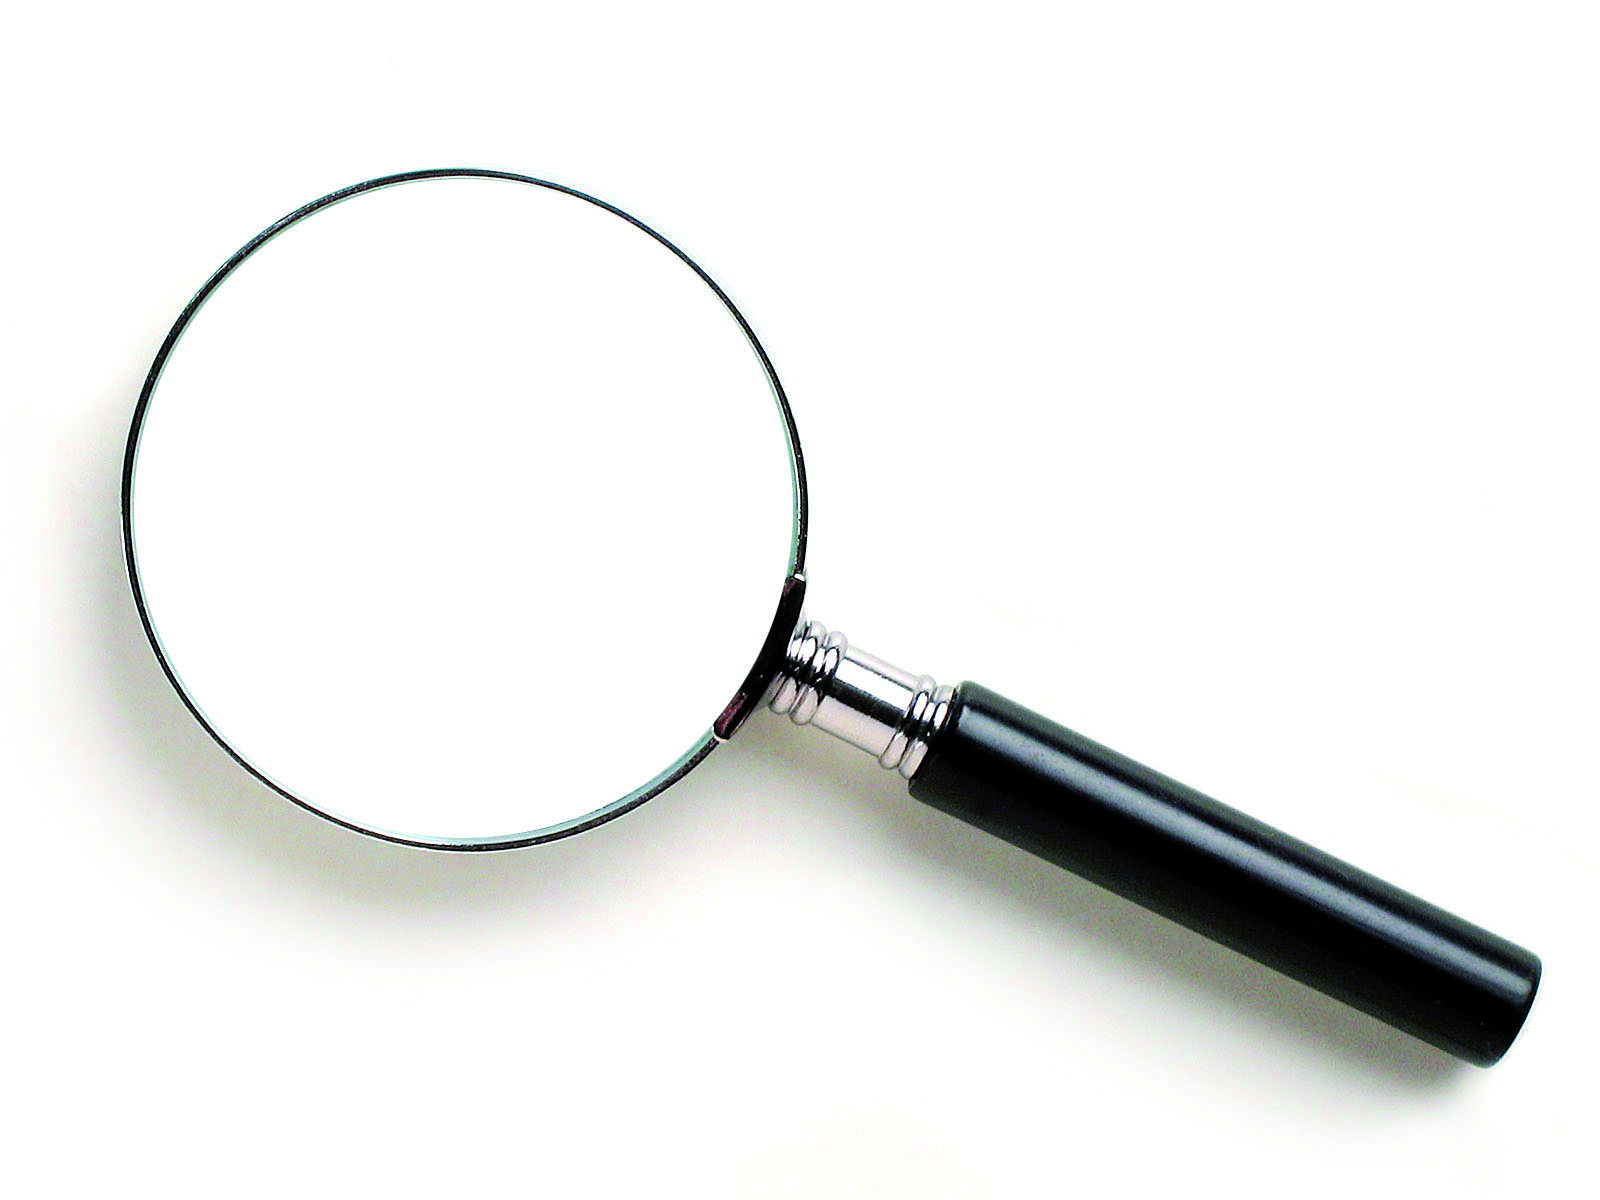 Realign your focus - magnifying glass